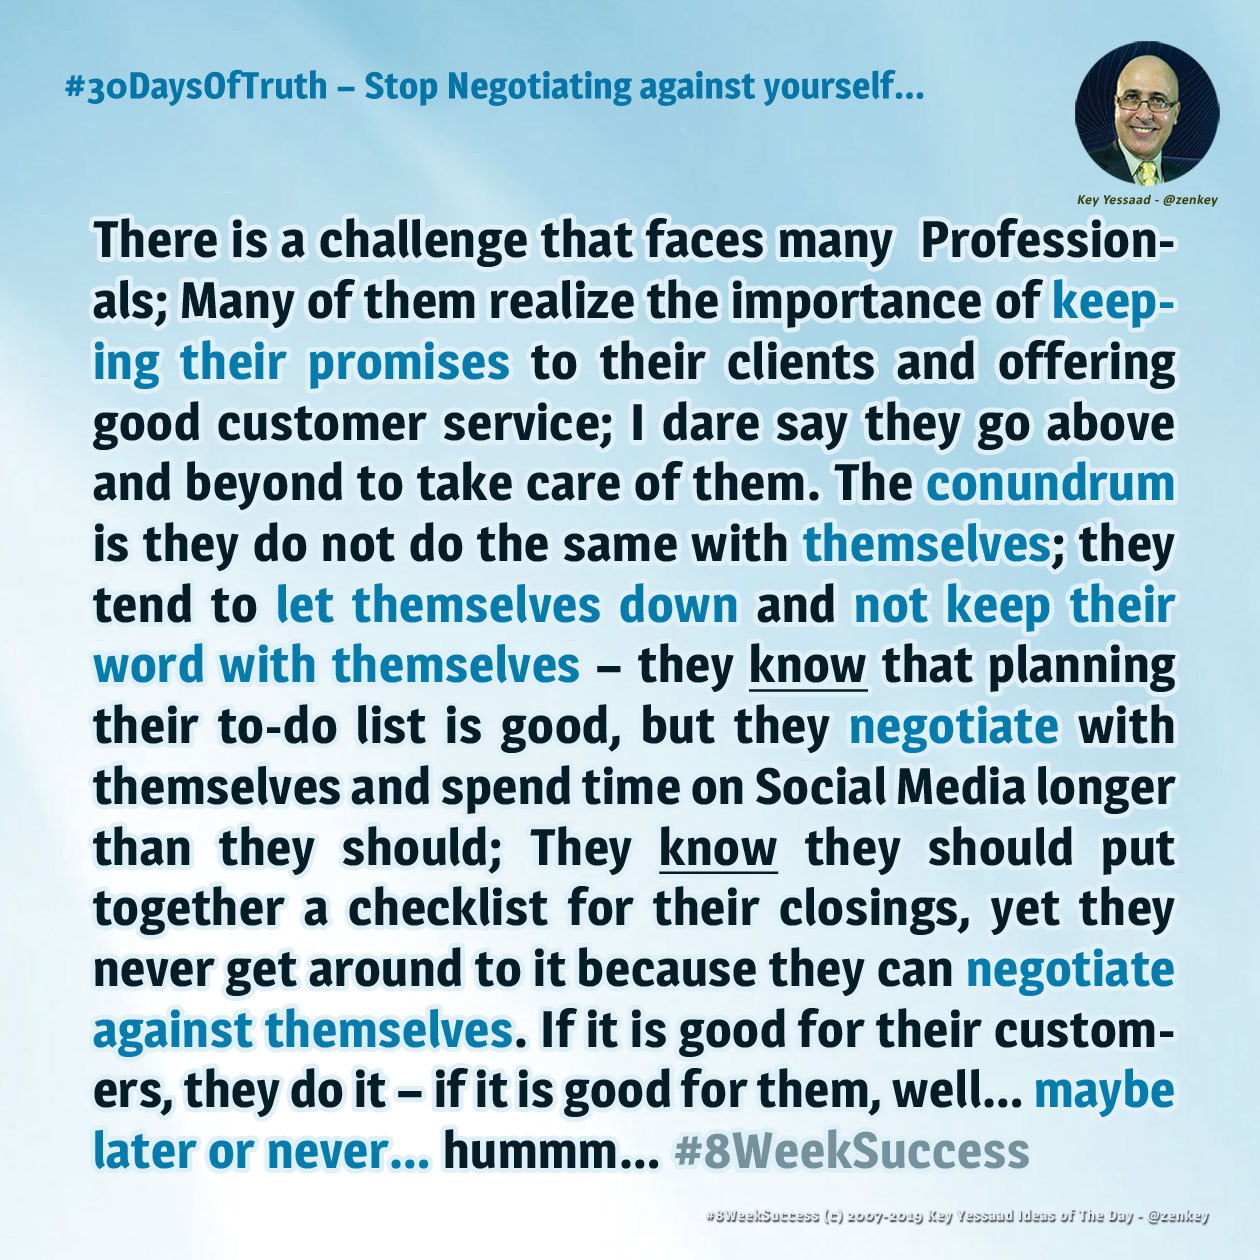 Stop Negotiating against yourself - #8WeekSuccess